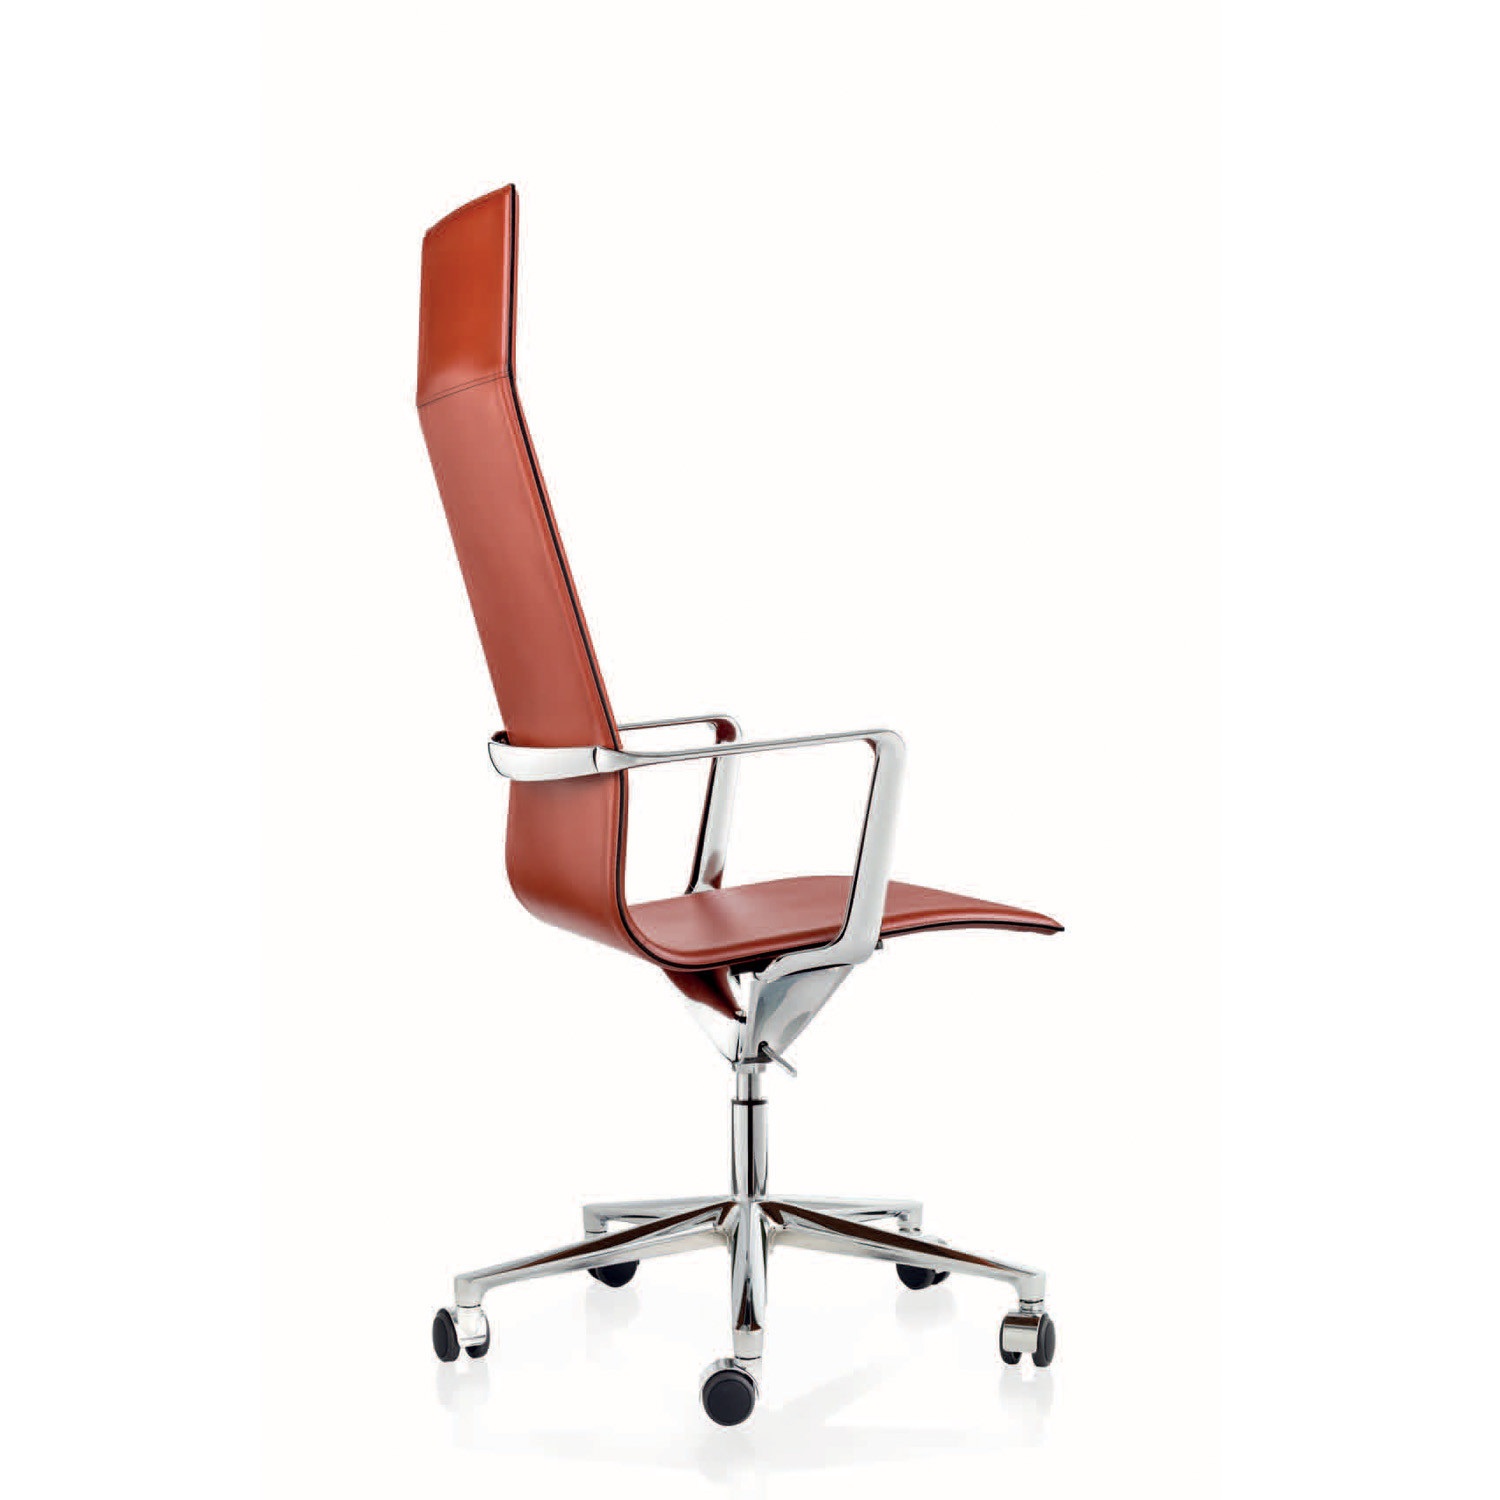 Kuna High Backrest Height Chair